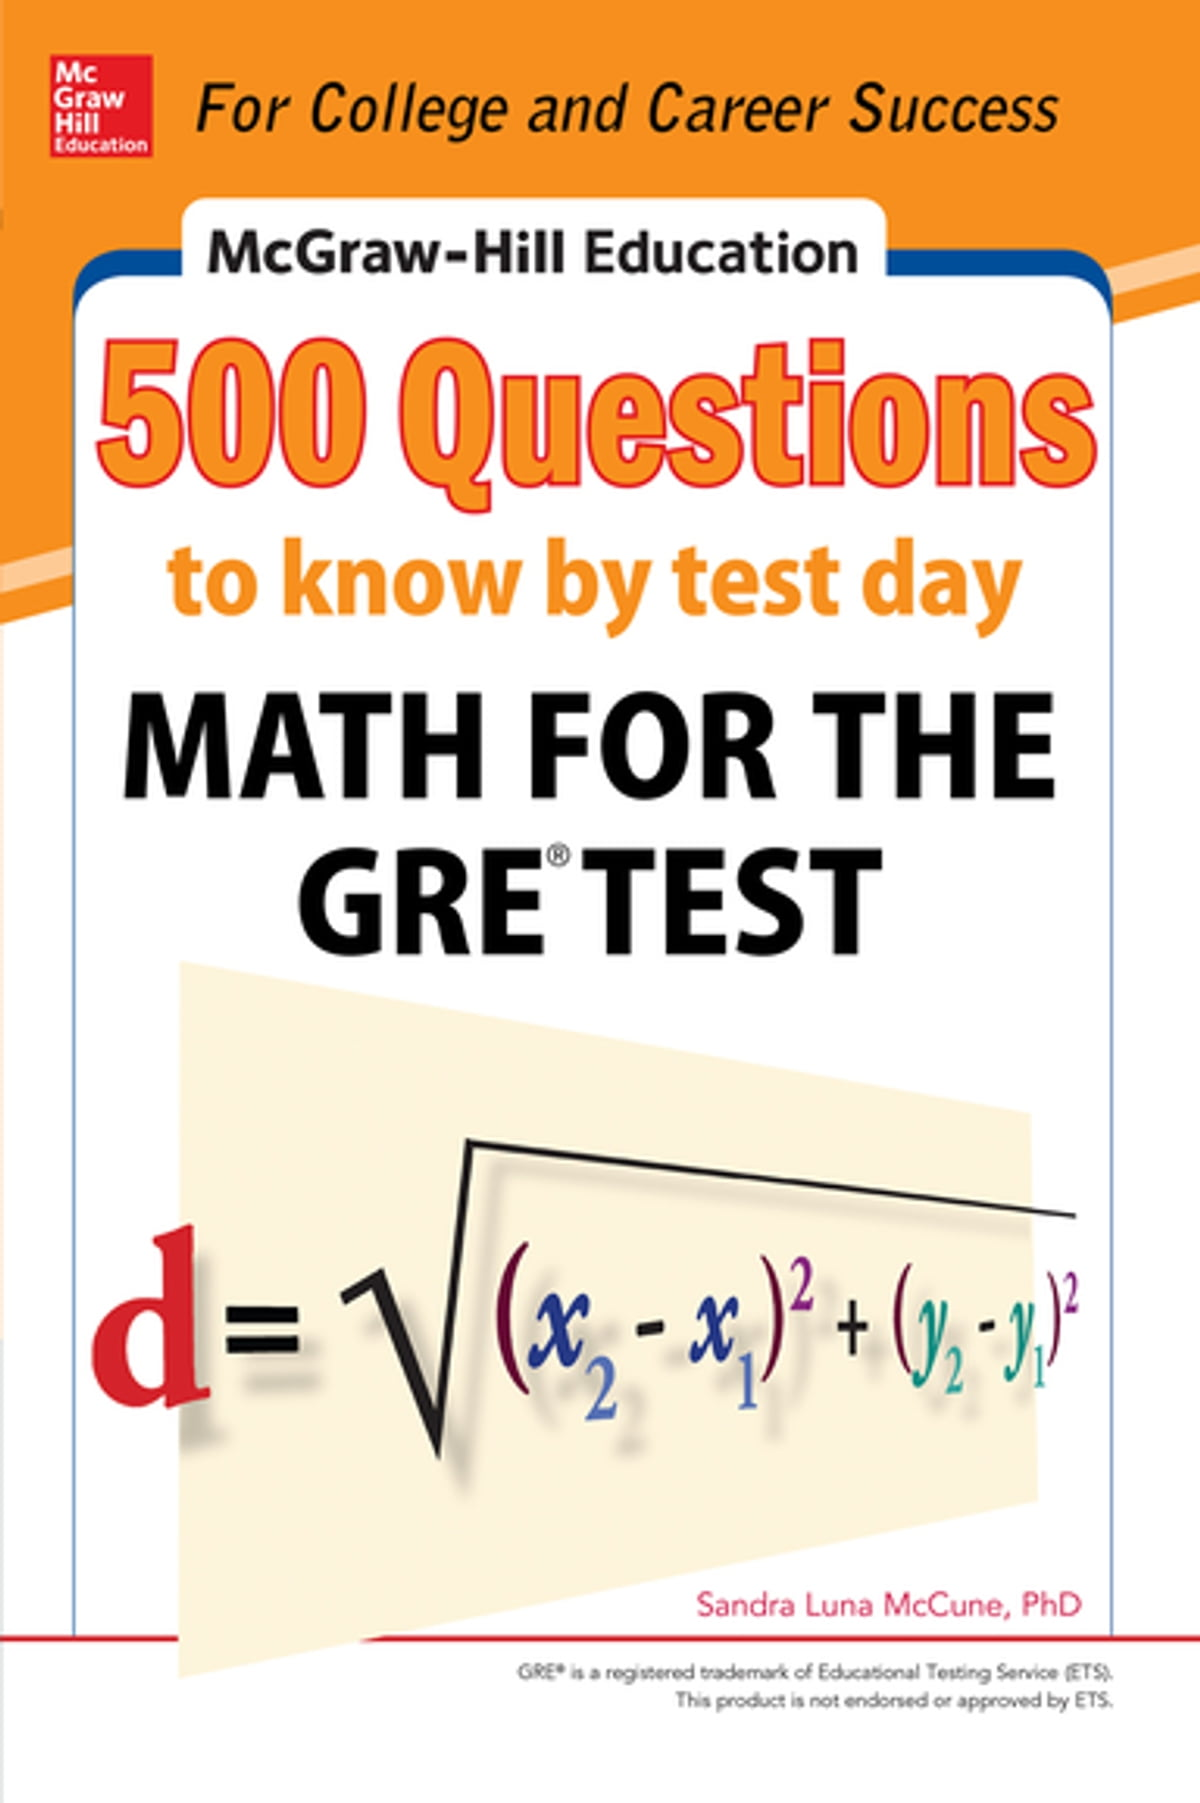 McGraw-Hill Education 500 Questions to Know by Test Day: Math for the GRE®  Test eBook by Sandra Luna McCune - 9780071820974 | Rakuten Kobo